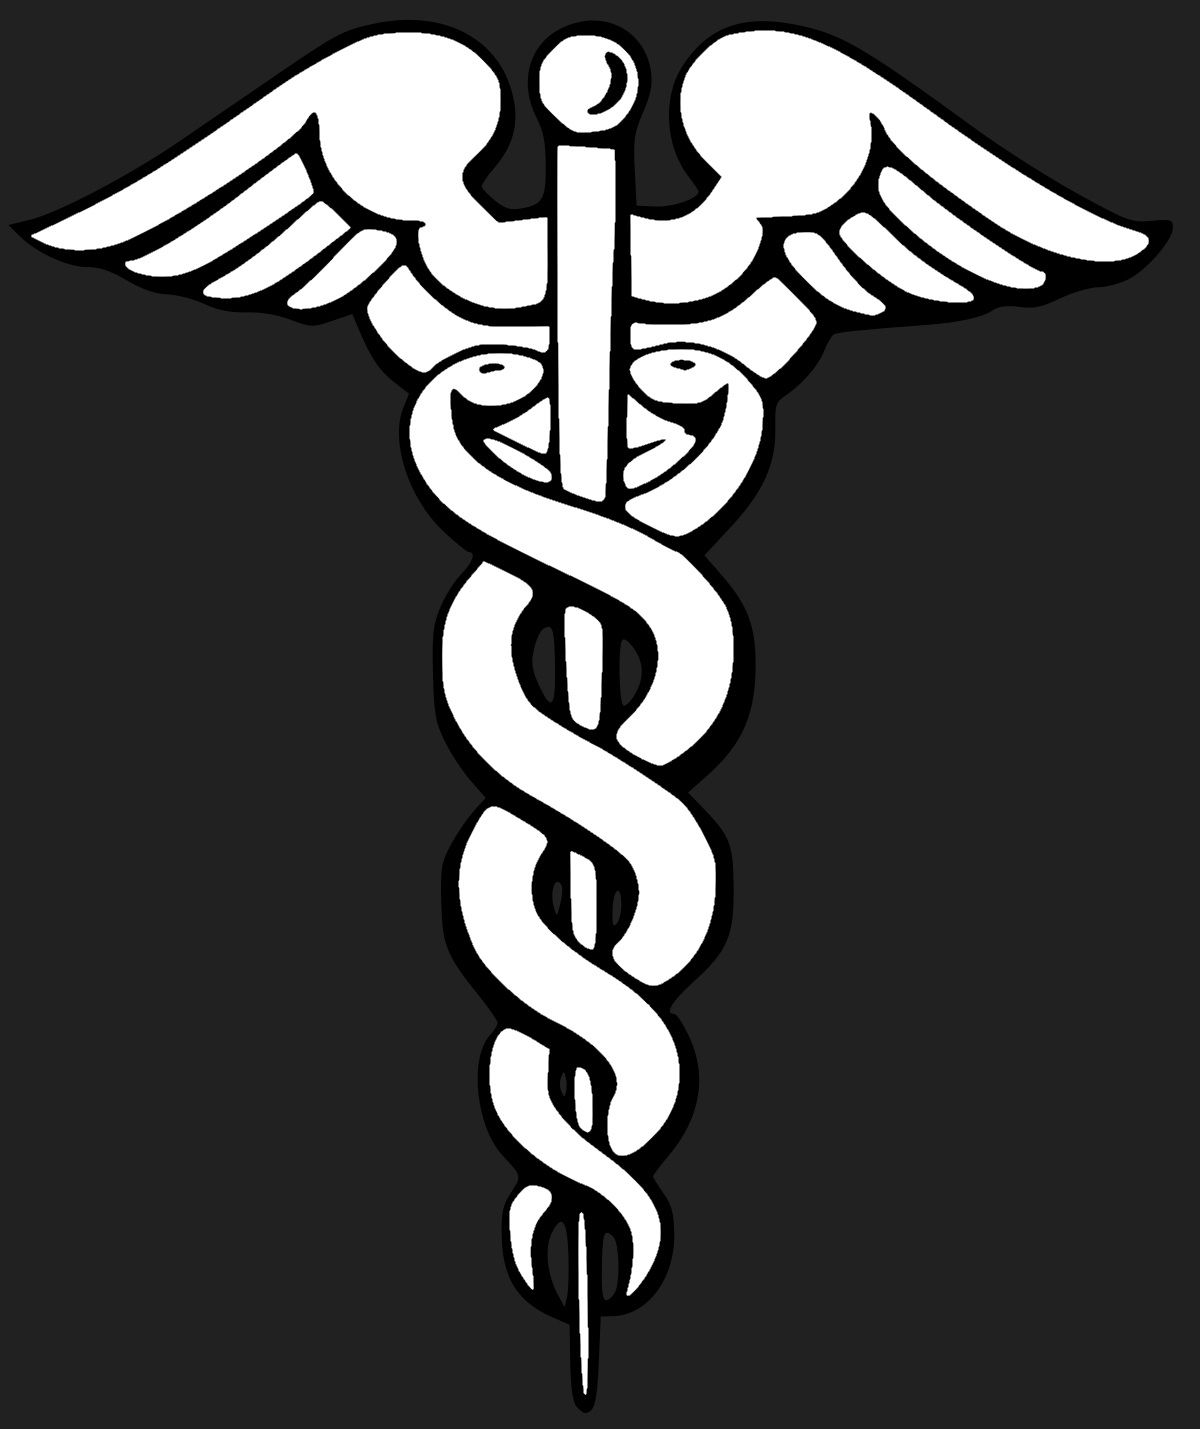 The Caduceus Kdusis Or Kdjus From Greek